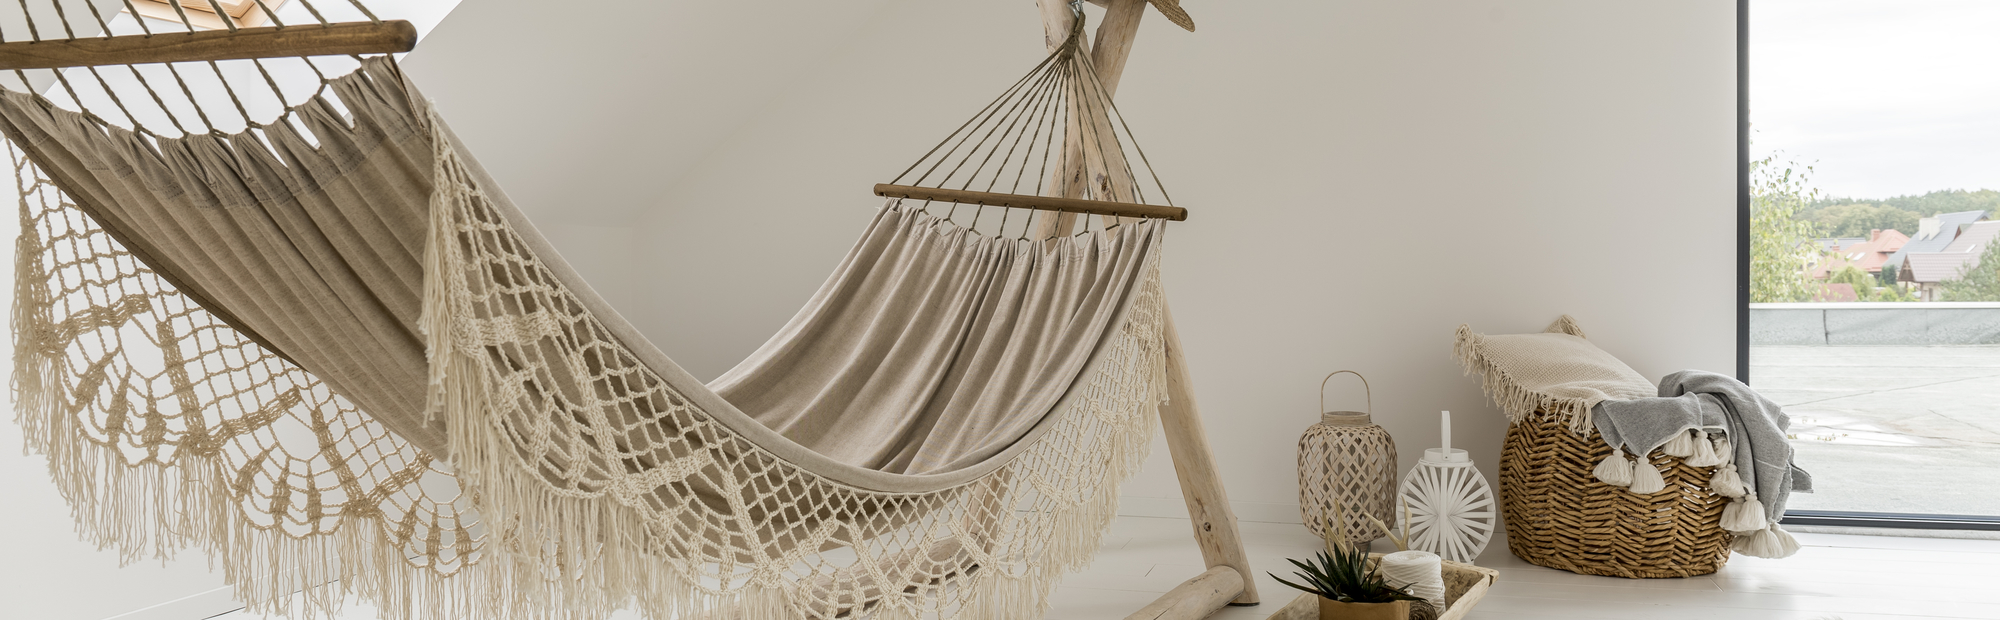 White Hammock With Lace In The Modern Designed Room